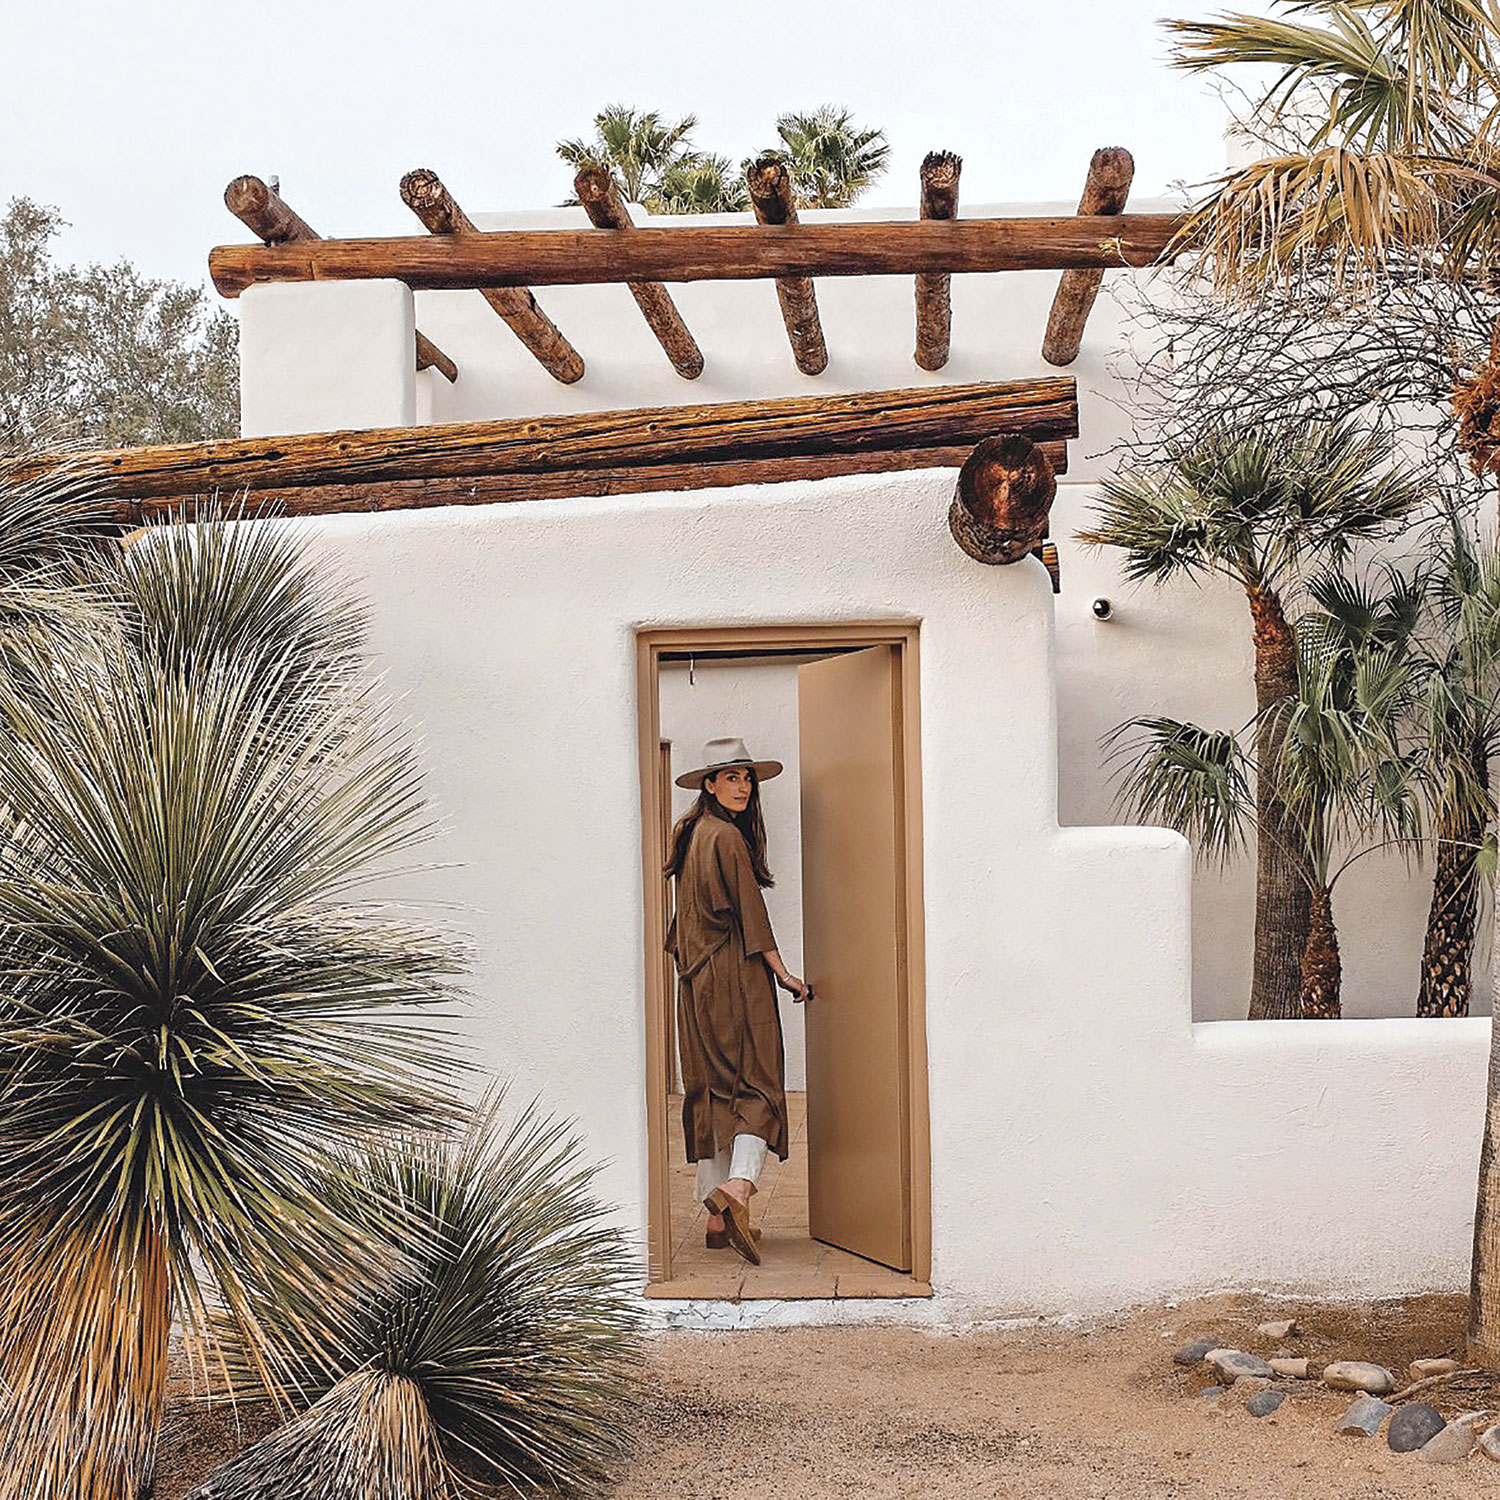 Joshua Tree House Tucson; Photo courtesy Joshua Tree House Tucson